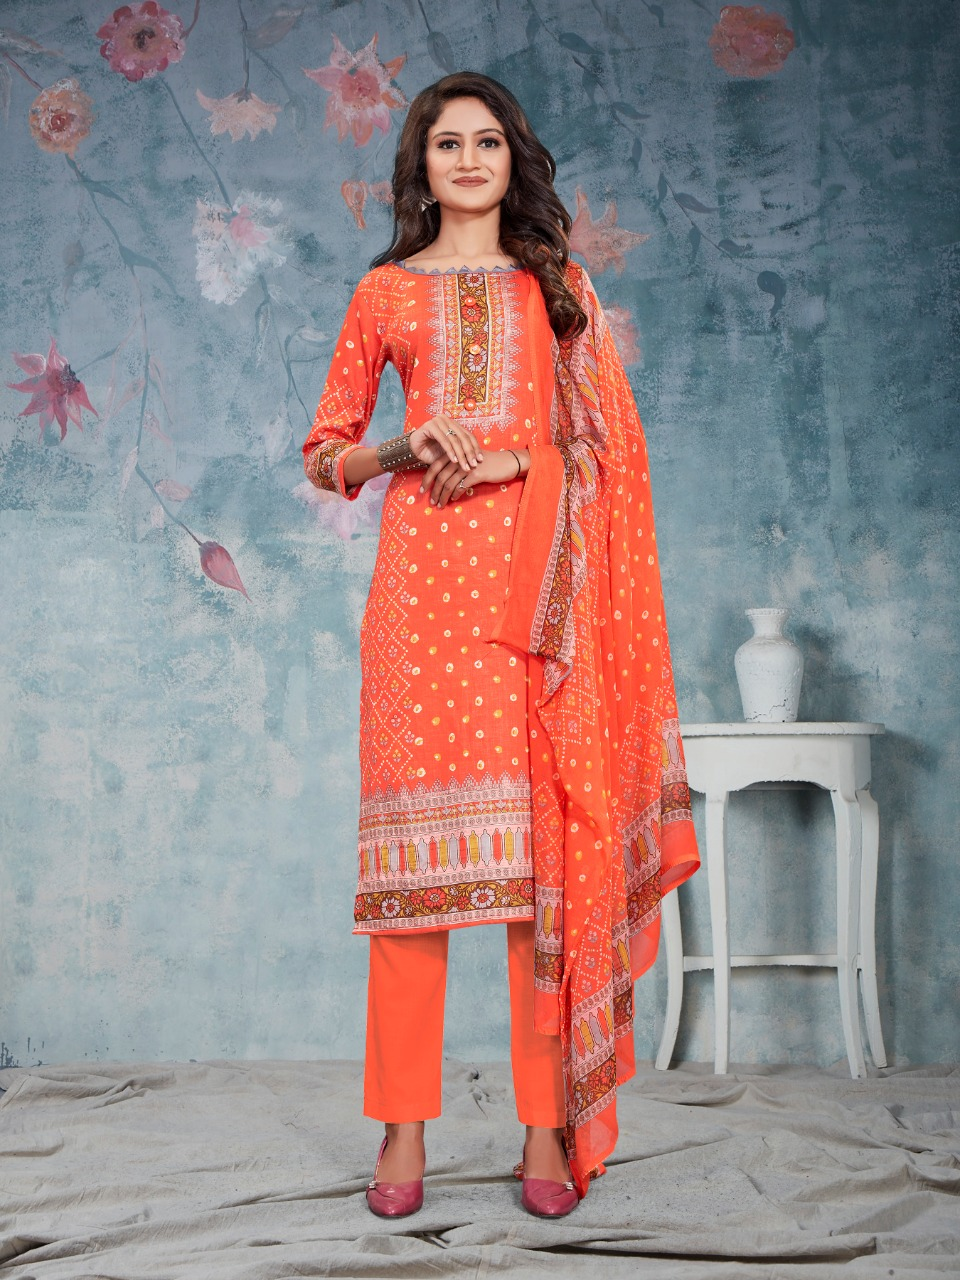 Bipson Fashion Preeto 1291 Glace Cotton Print With Embroidery Work Dress Material At Wholesale Rate